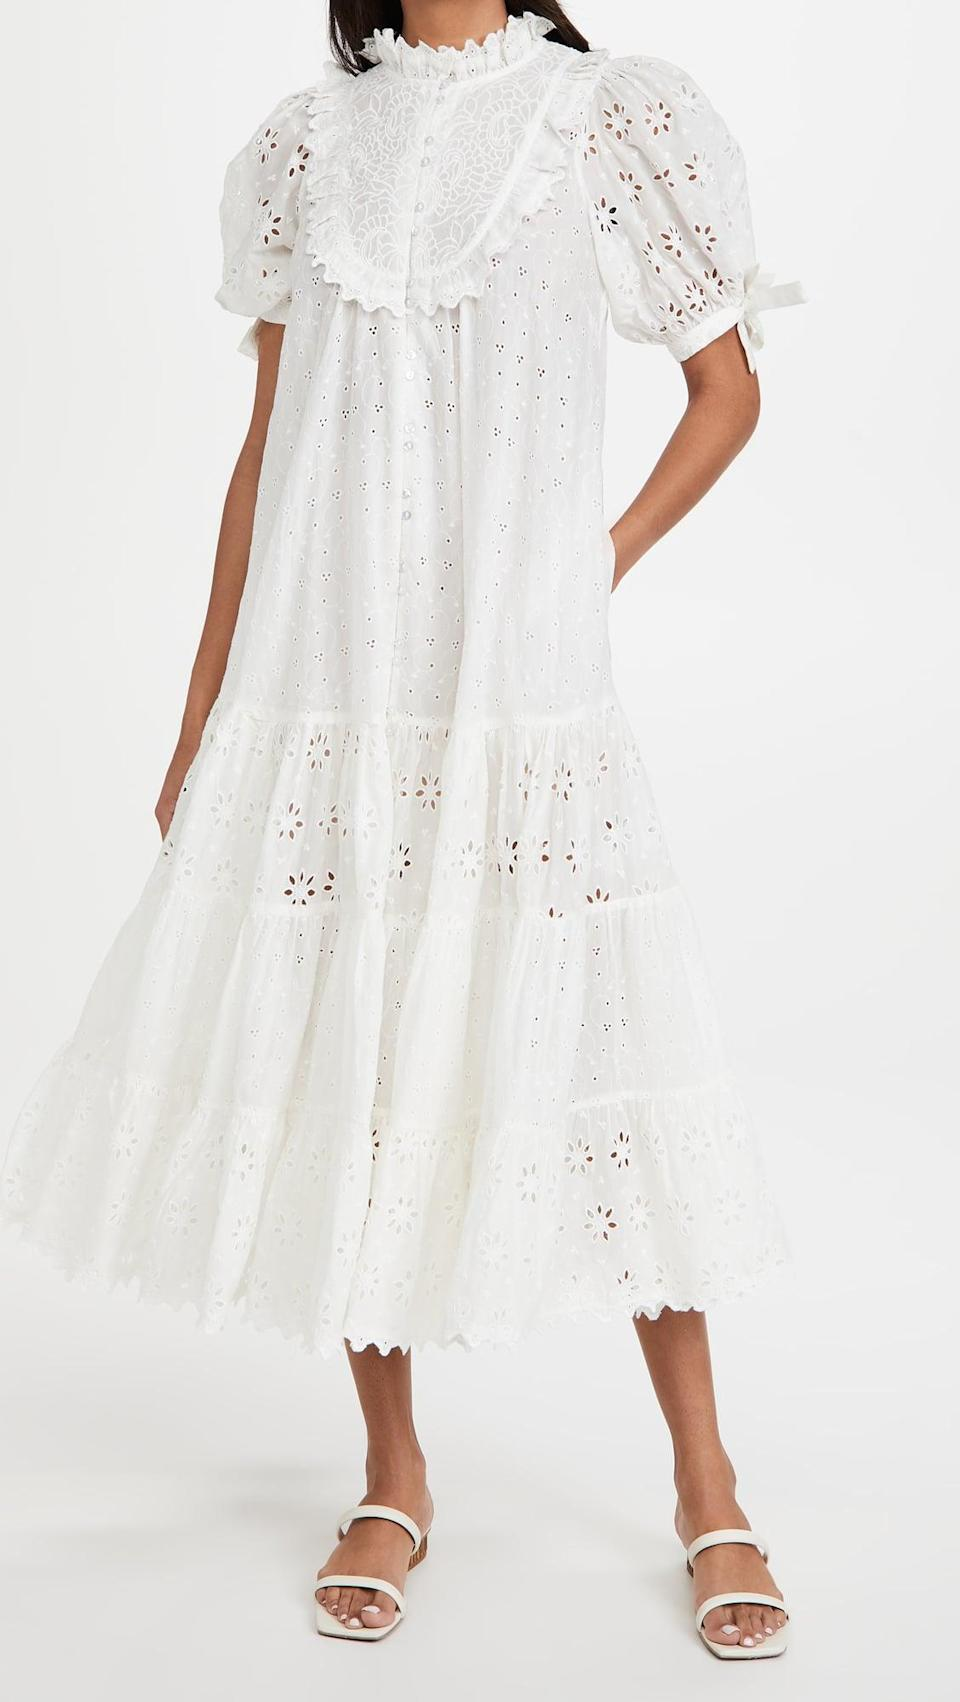 <p>This <span>byTiMo Broderie Anglaise Midi Dress</span> ($565) is lacy and romantic and beautiful. It's a dreamy dress, and it has pockets!</p>